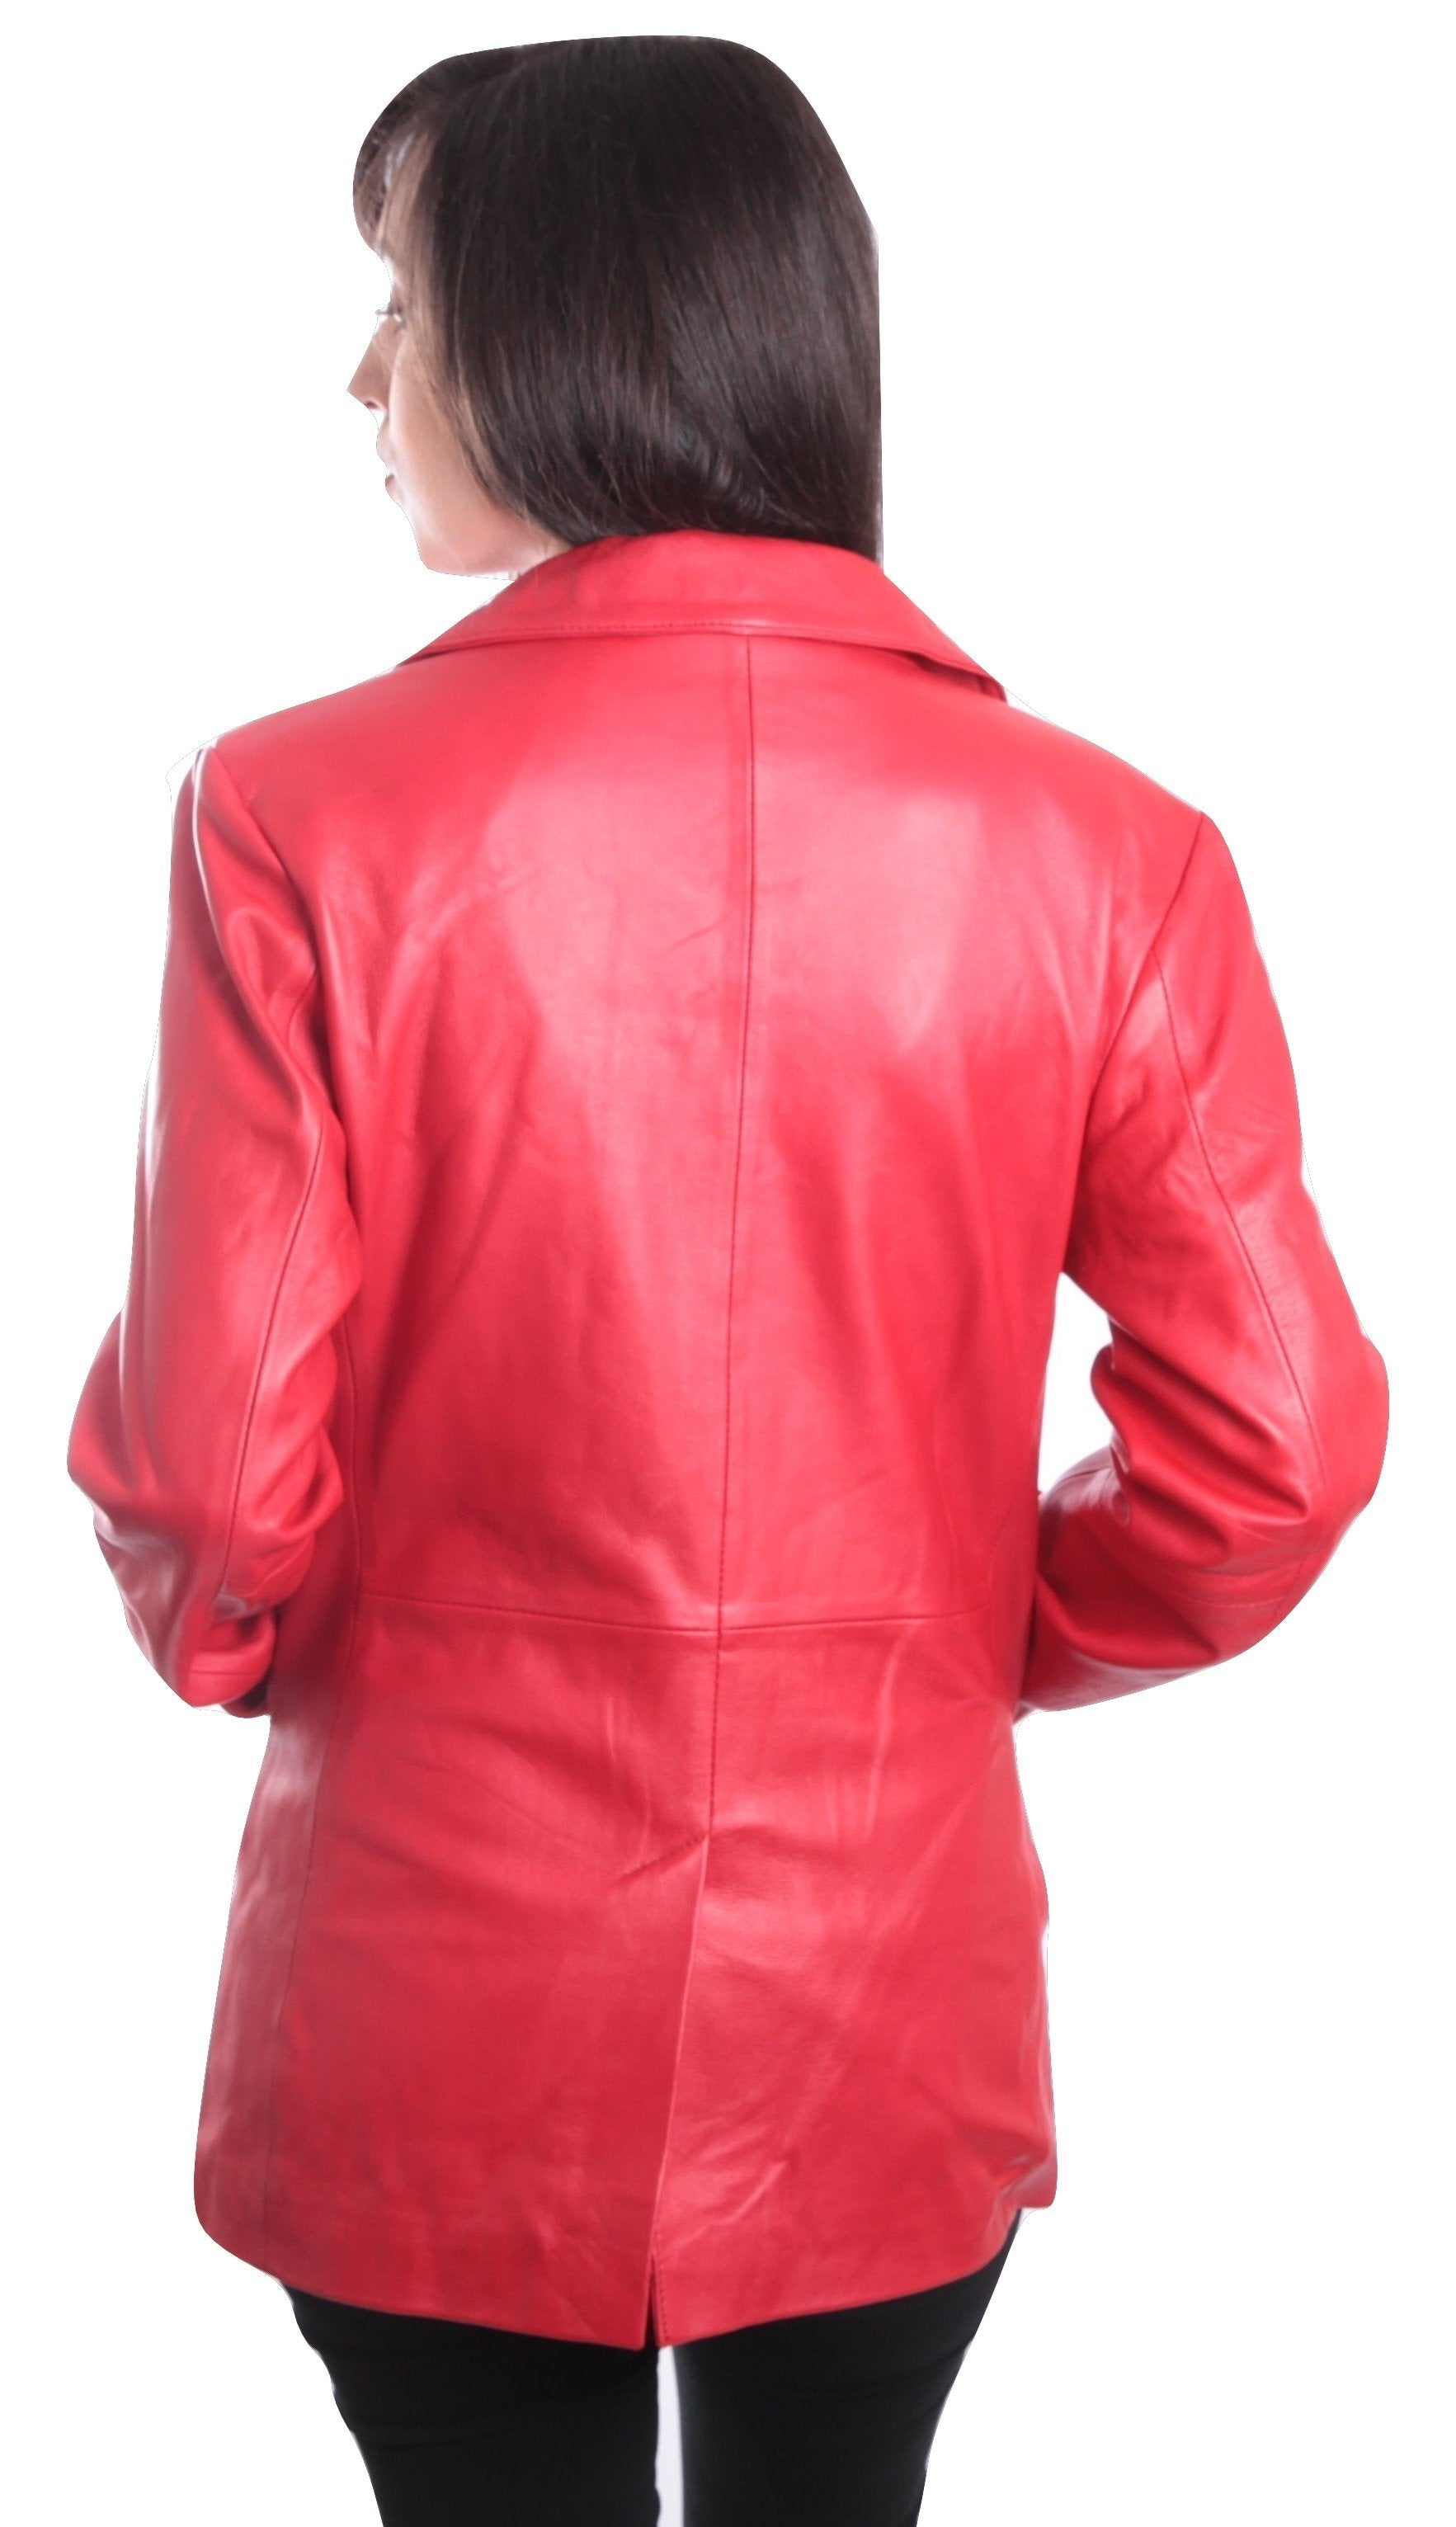 Womens Leather Blazer - Womens Red Hot 3 Button Leather Blazer